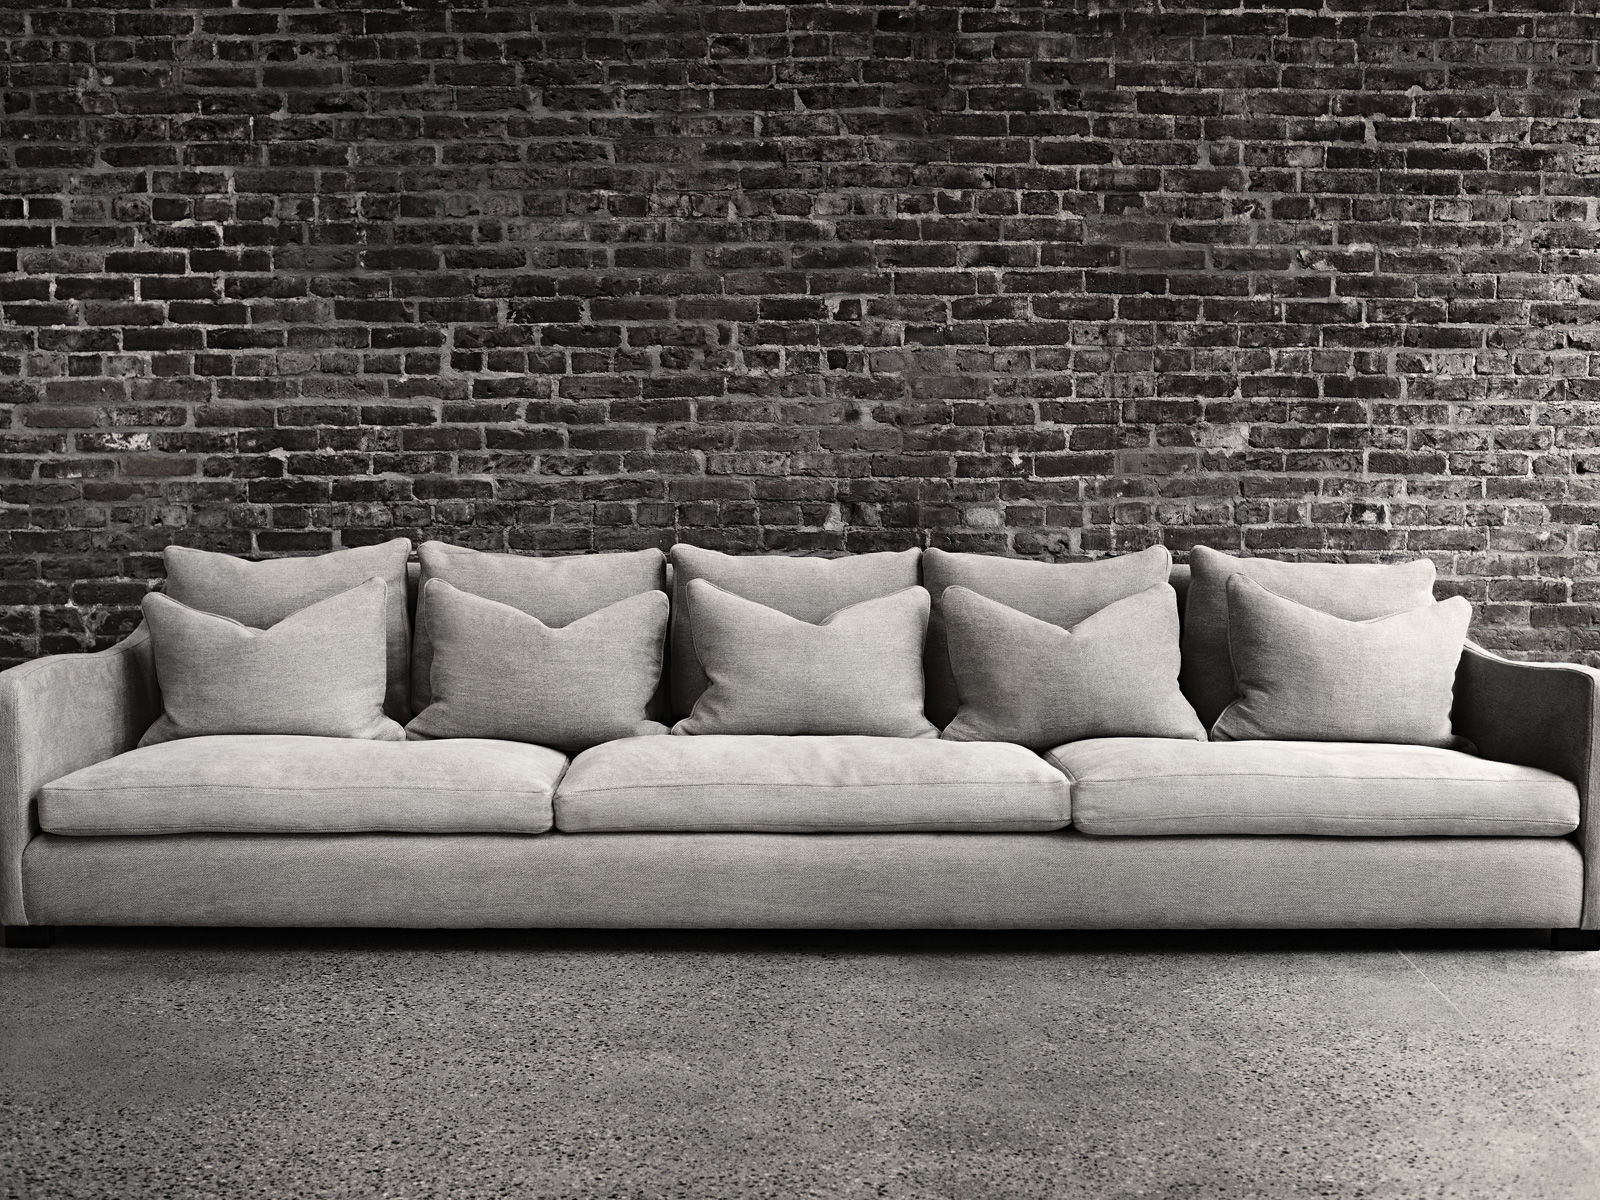 modern rooms to go sofa image-Latest Rooms to Go sofa Wallpaper